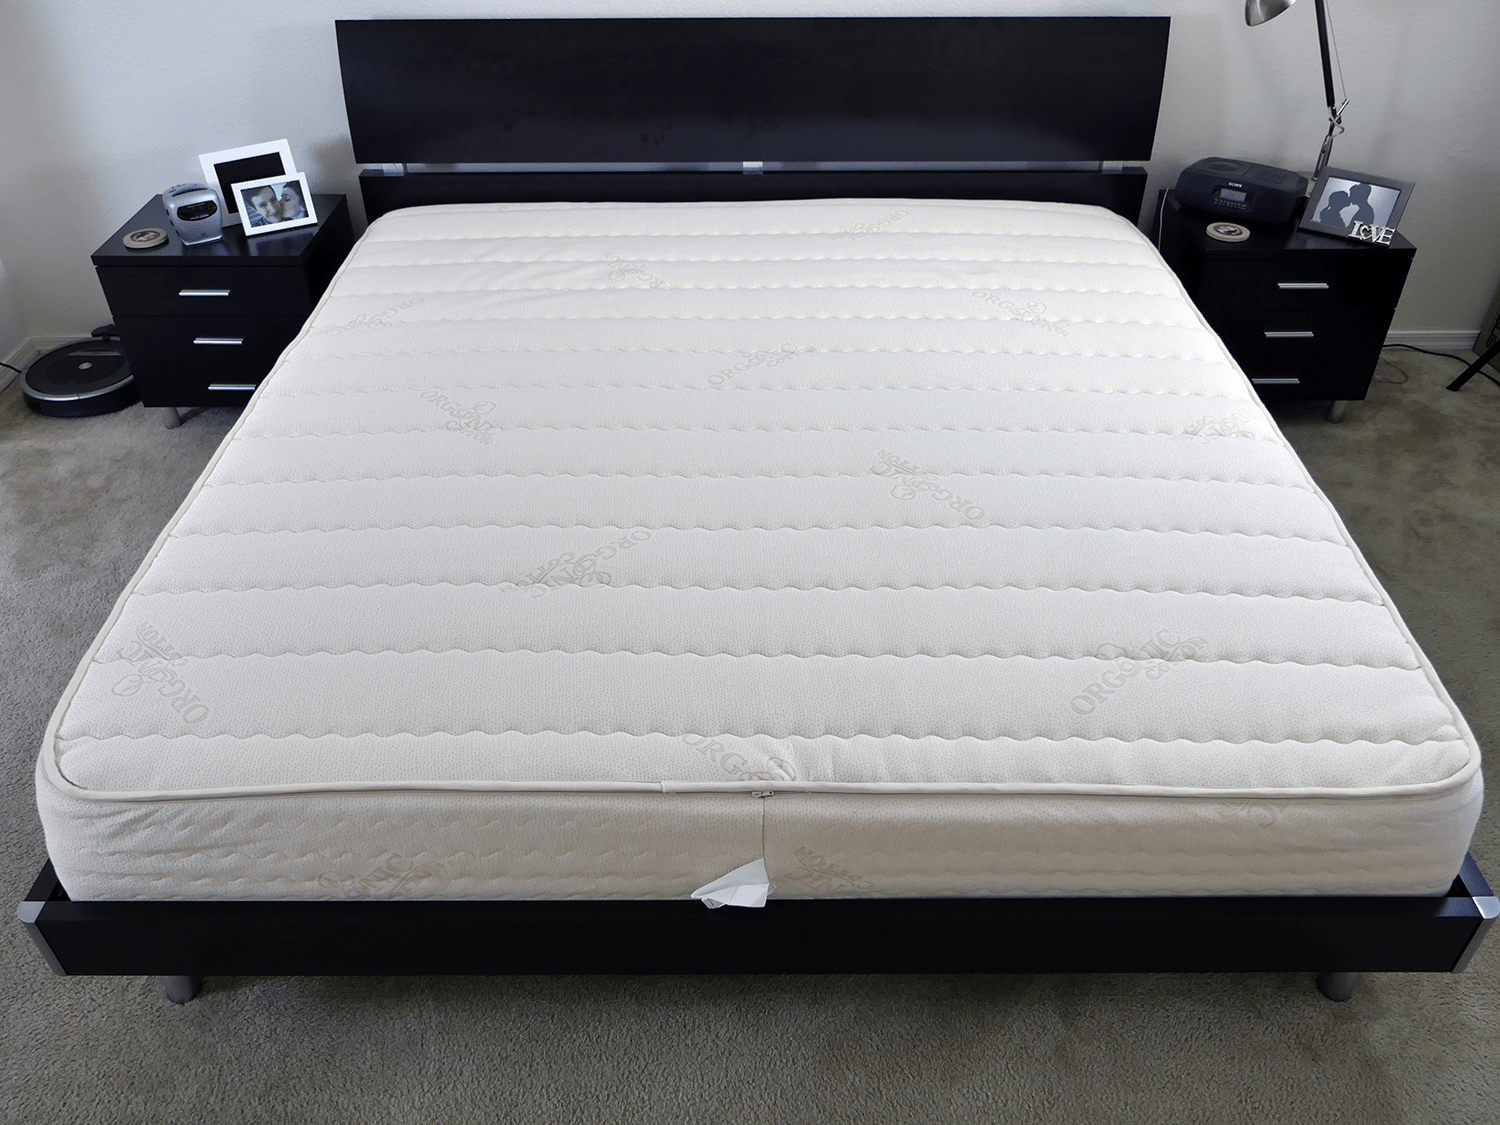 Plushbeds Botanical Bliss Mattress Review Sleepopolis